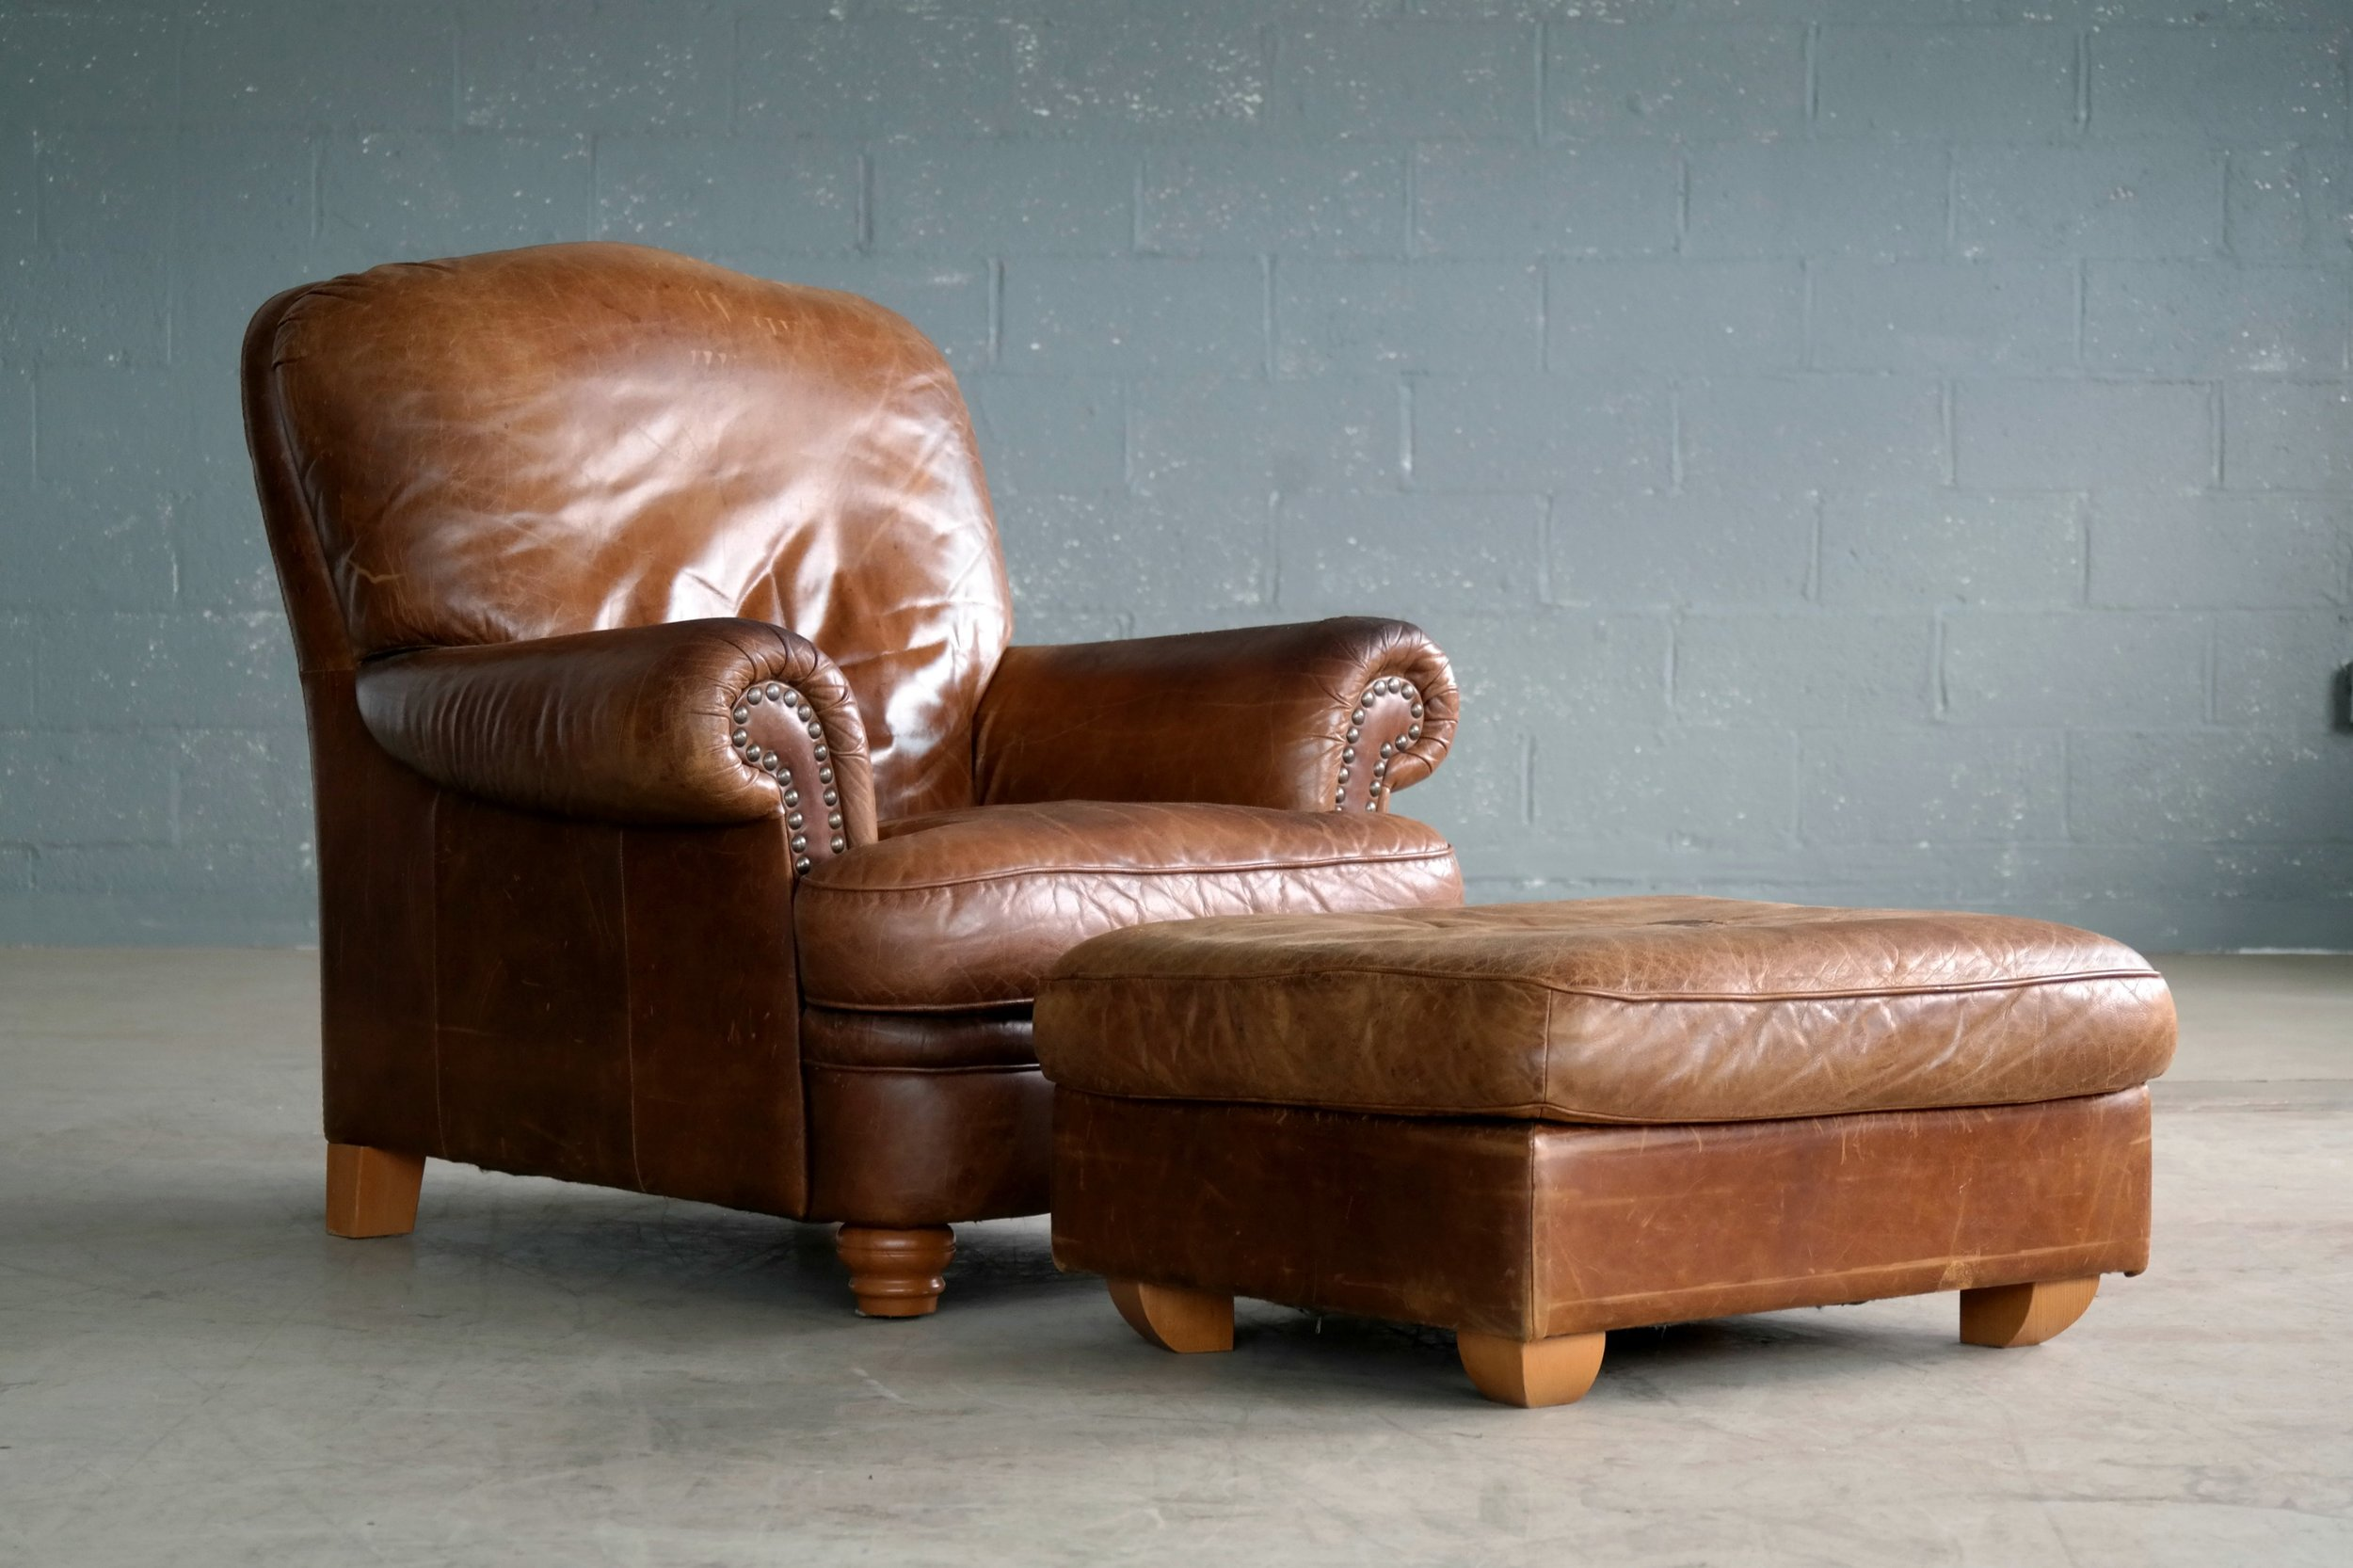 Danish Mid-Century Large Size Cognac Color Leather Club Chair with Ottoman